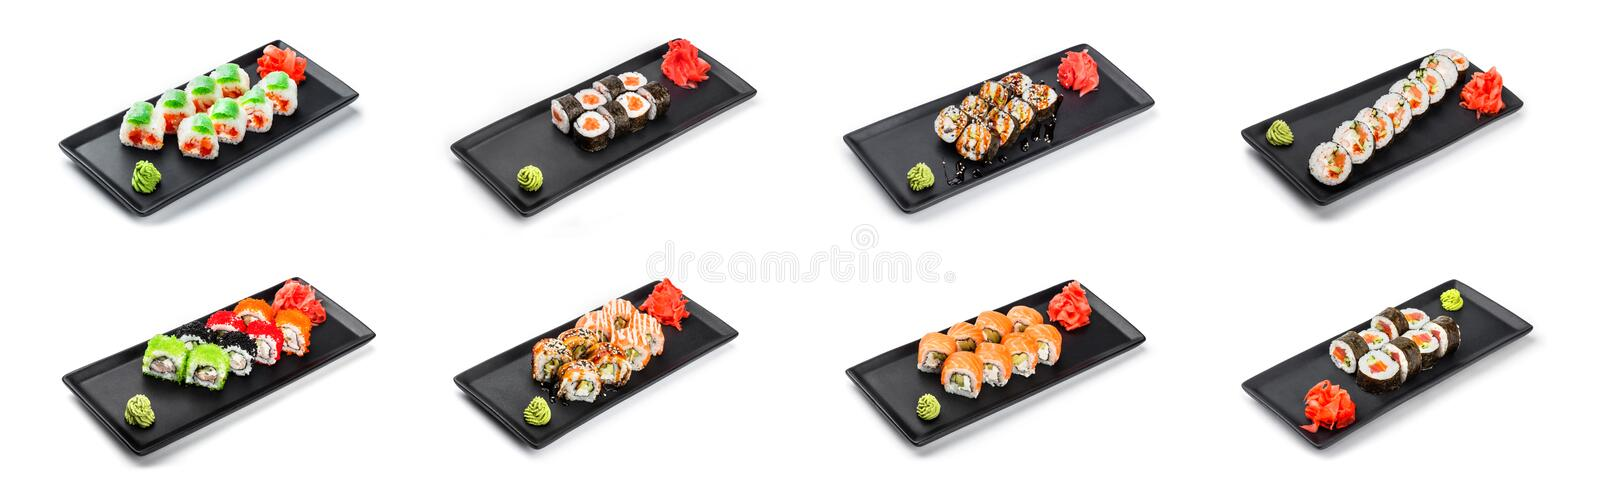 Big set of Sushi Roll - Maki Sushi on black plate isolated over white background. royalty free stock images